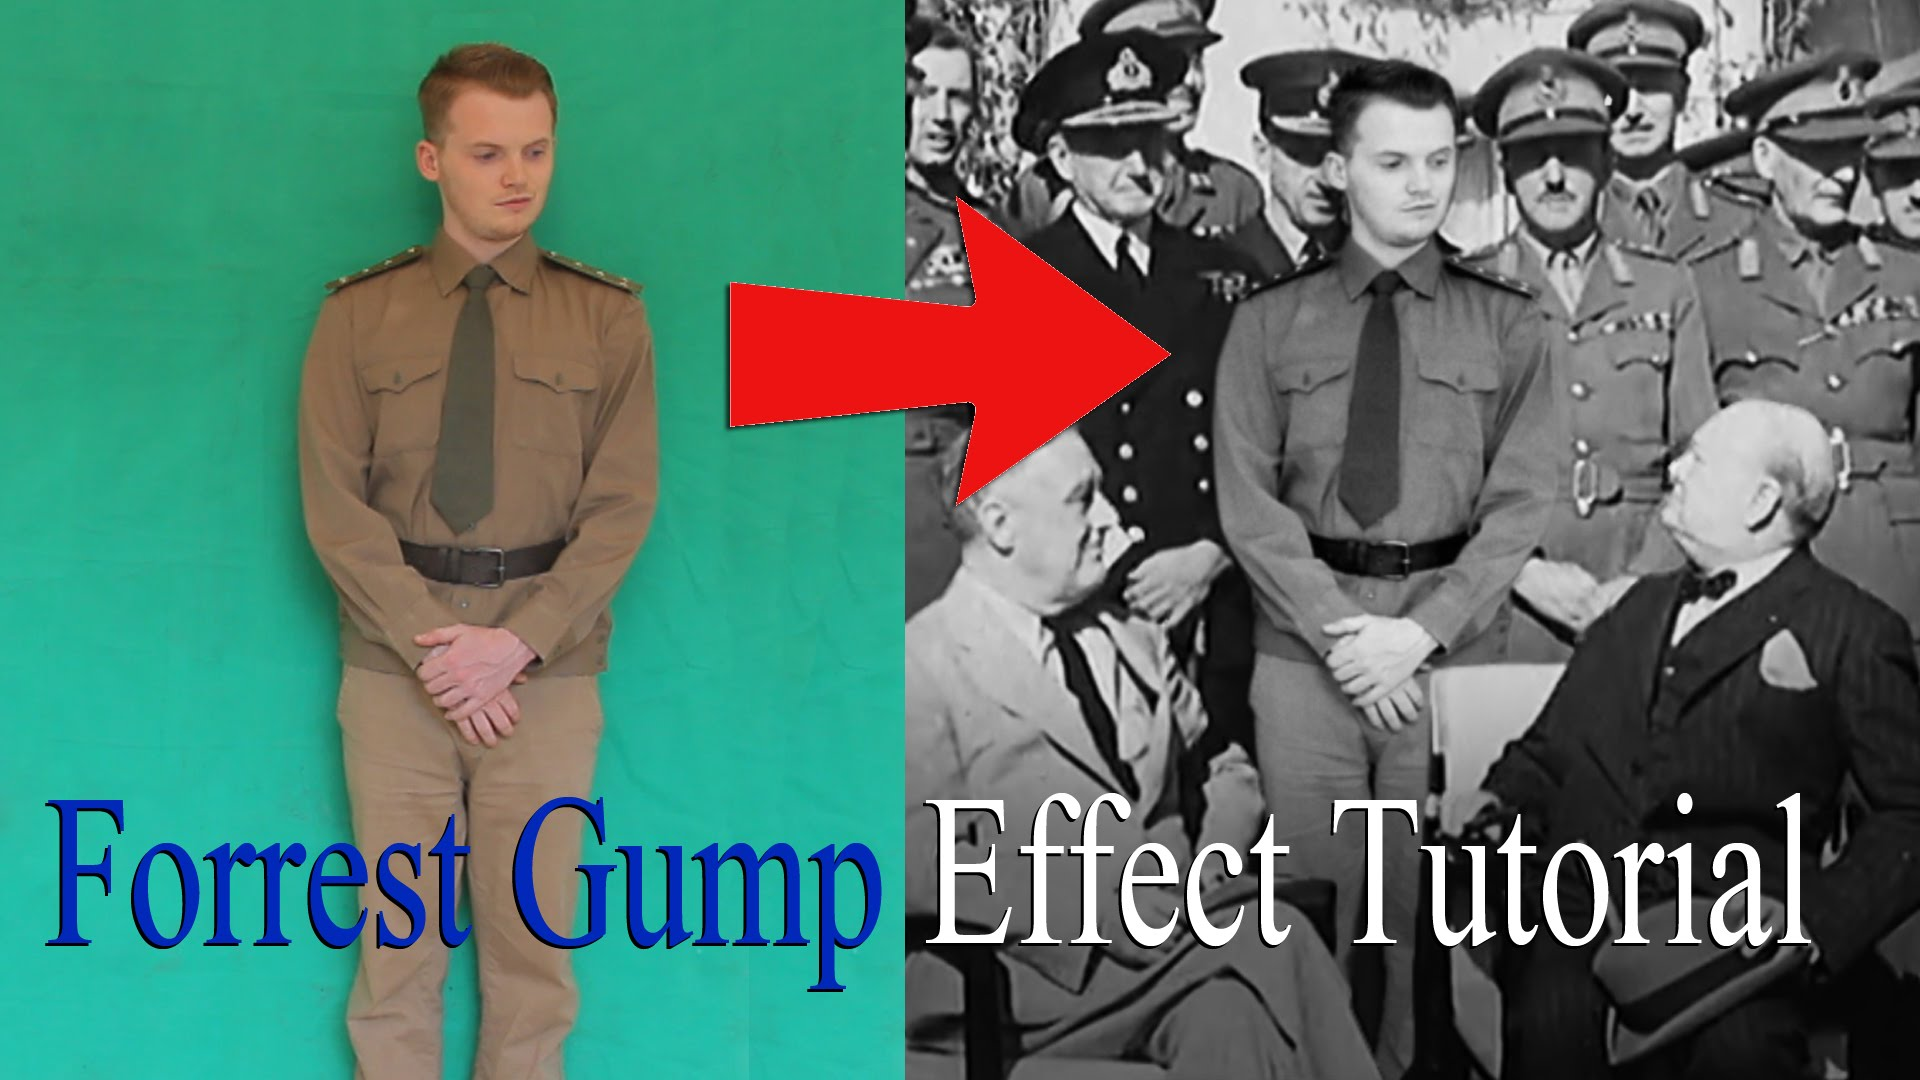 How to Add Yourself Into Historical Footage Using Adobe After Effects, Just Like in 'Forrest Gump'